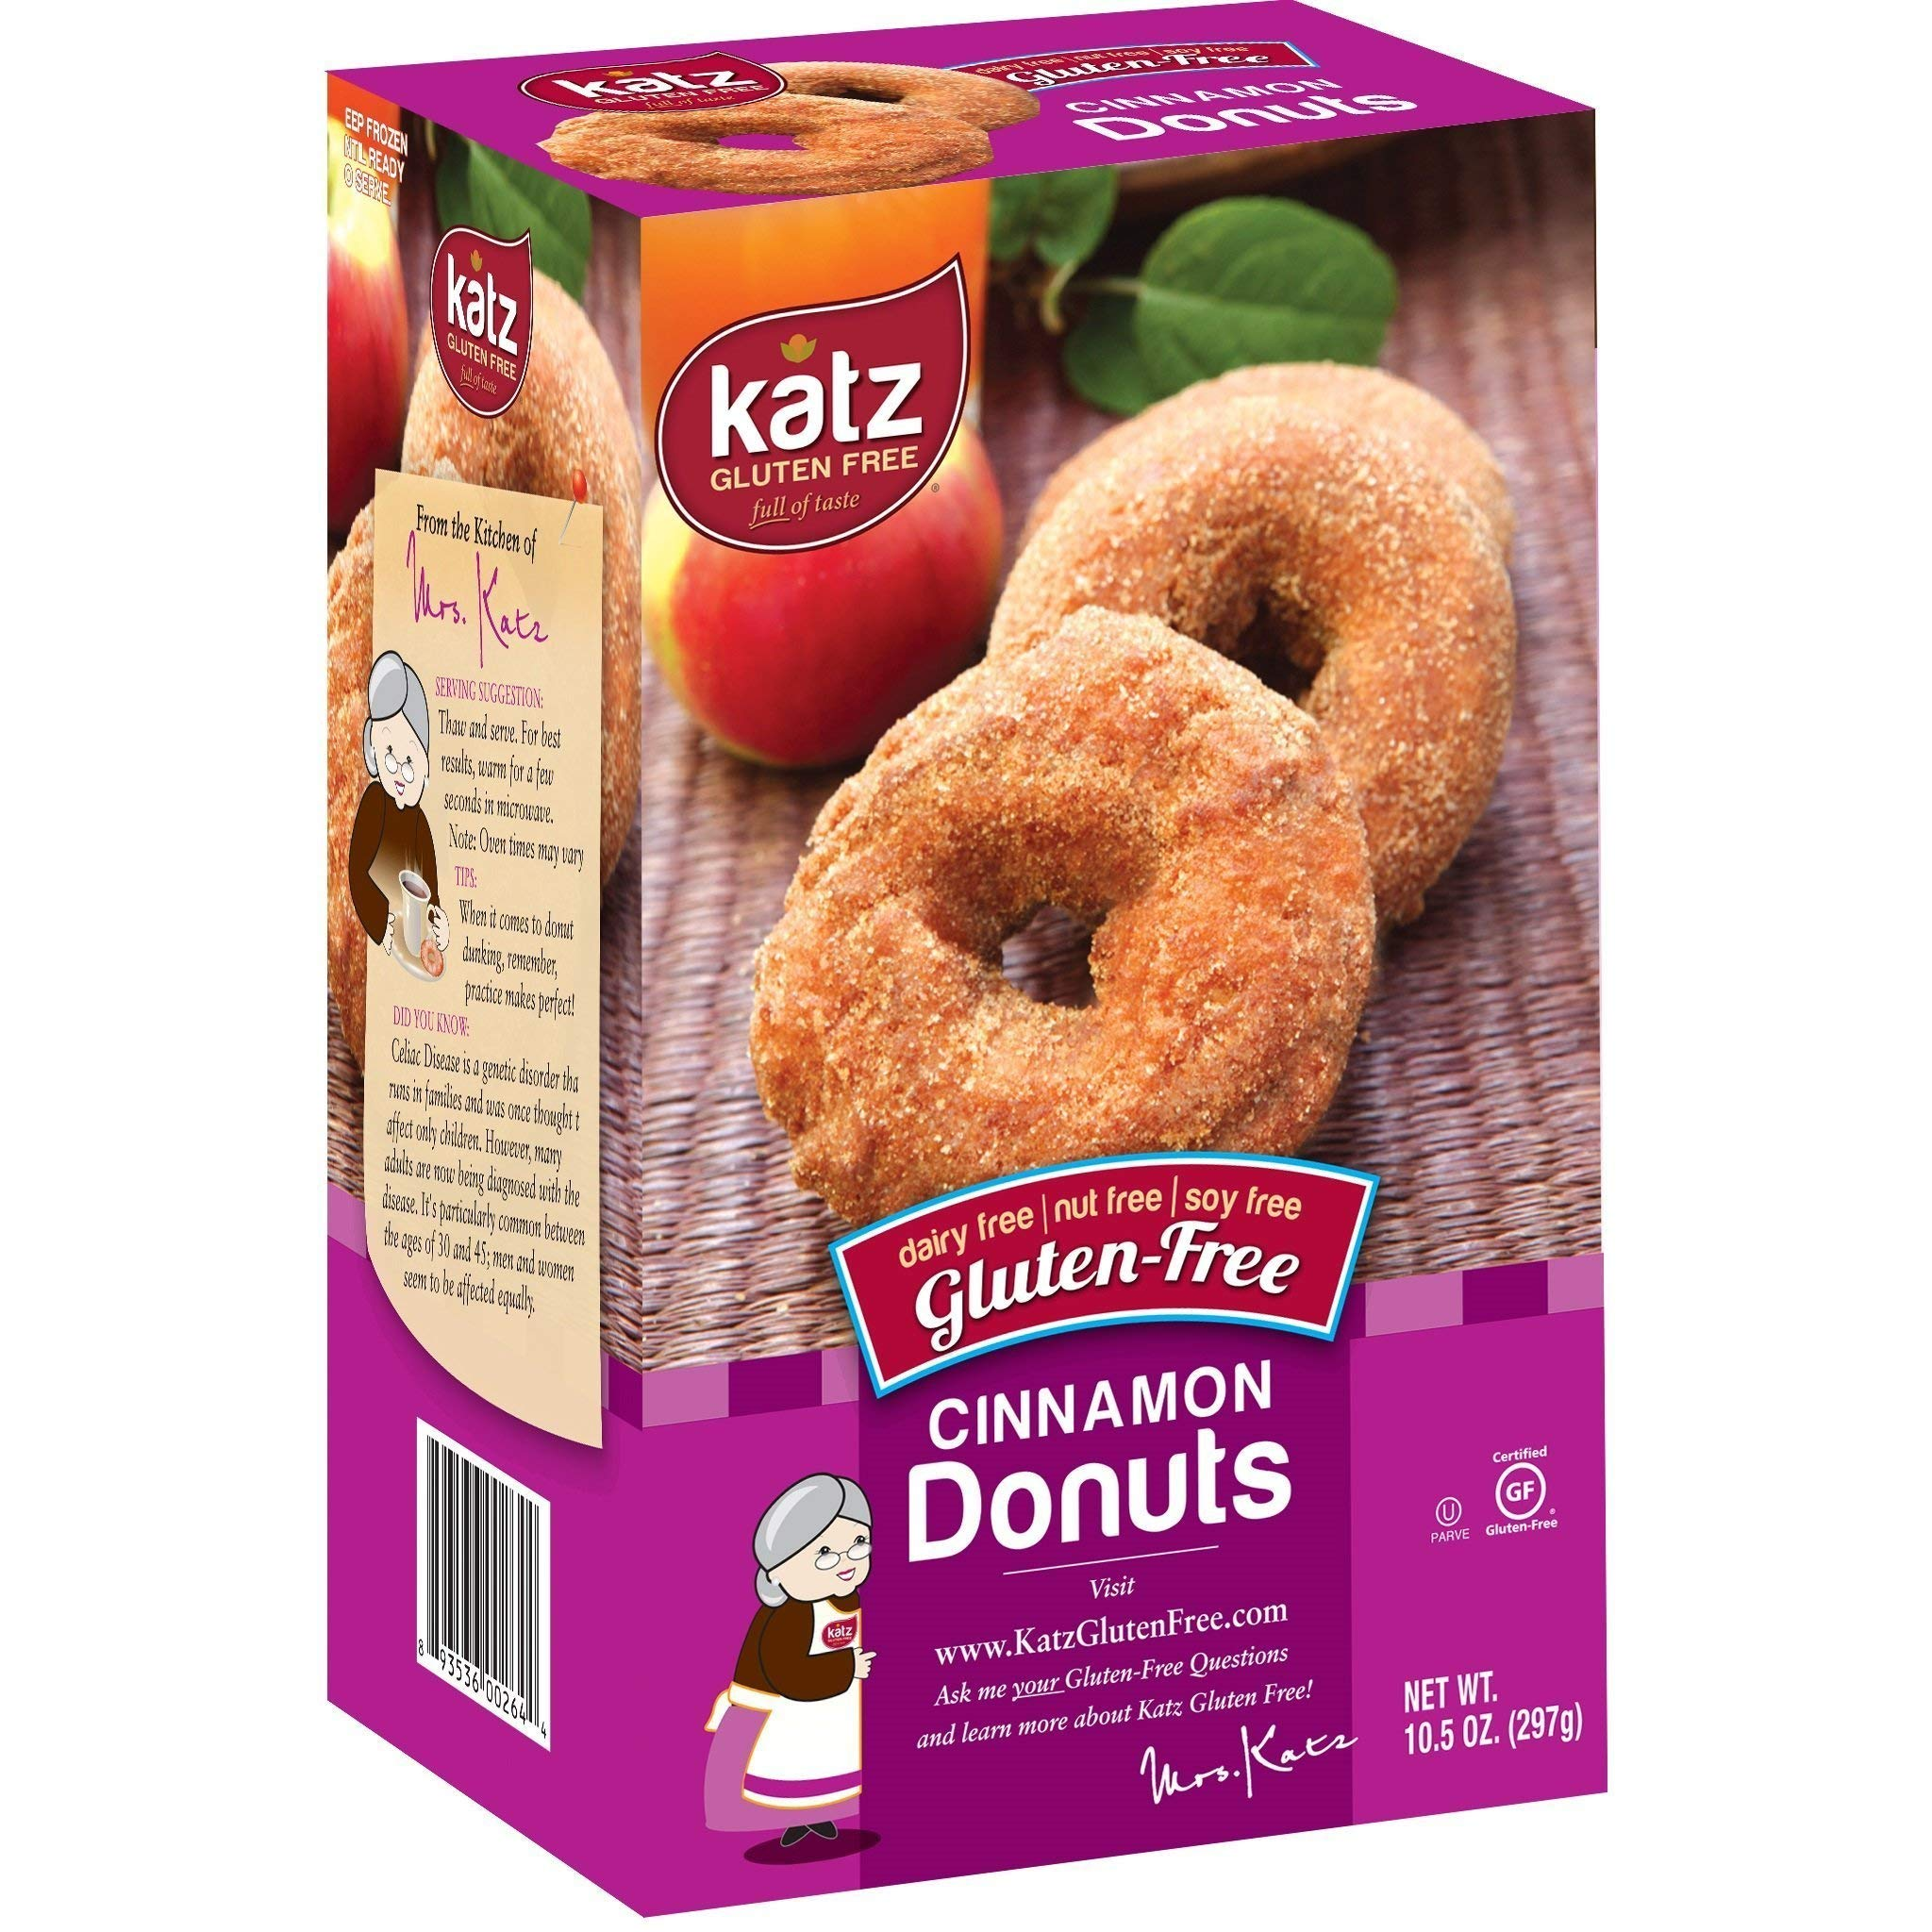 Katz Gluten-Free Cinnamon Donuts | Dairy, Nut, Soy and Gluten-Free | Kosher (1 Pack of 6 Donuts, 10.5 Ounce) by Katz Gluten Free